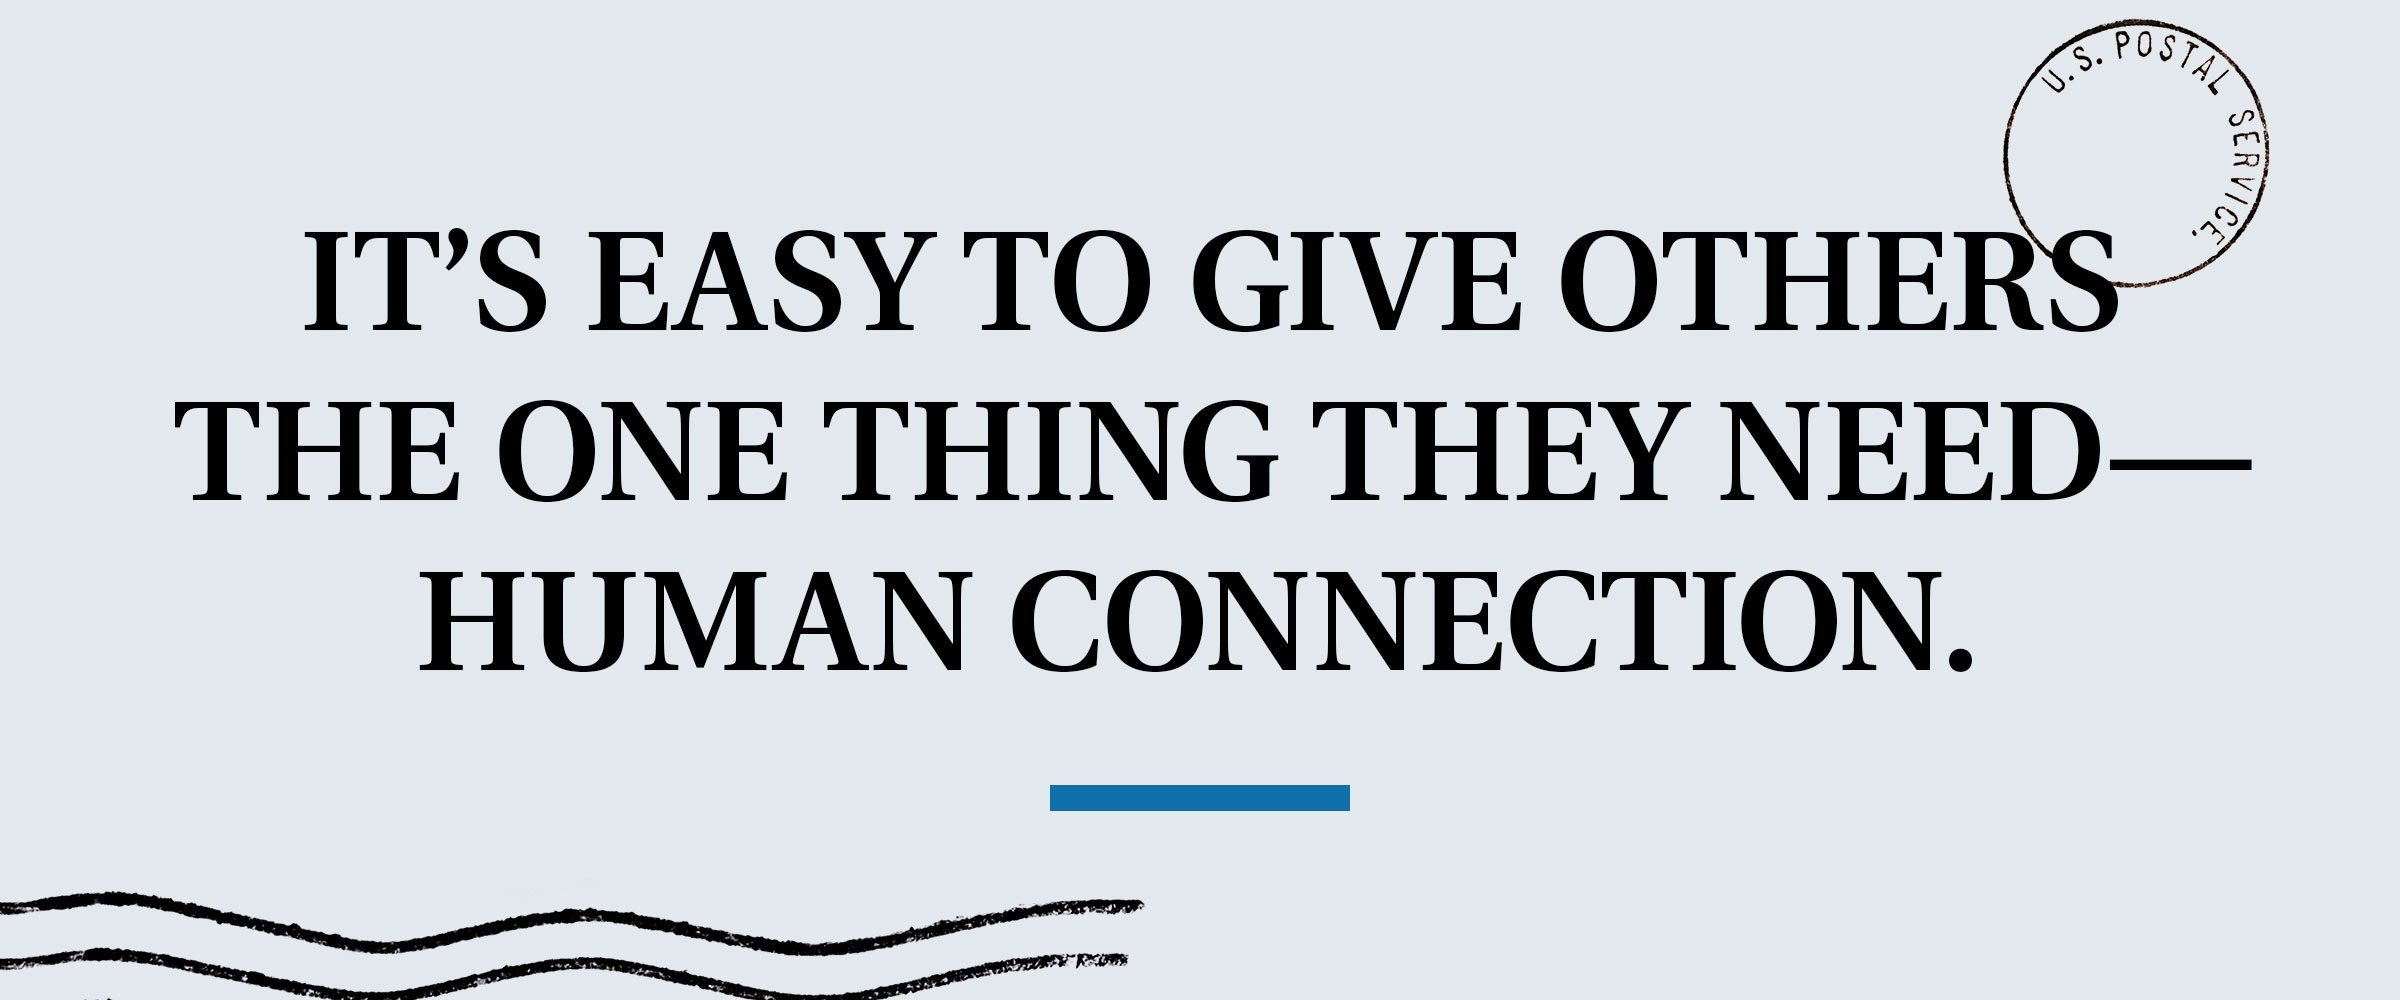 pull quote text: It's easy to give others the one thing they need - human connection.